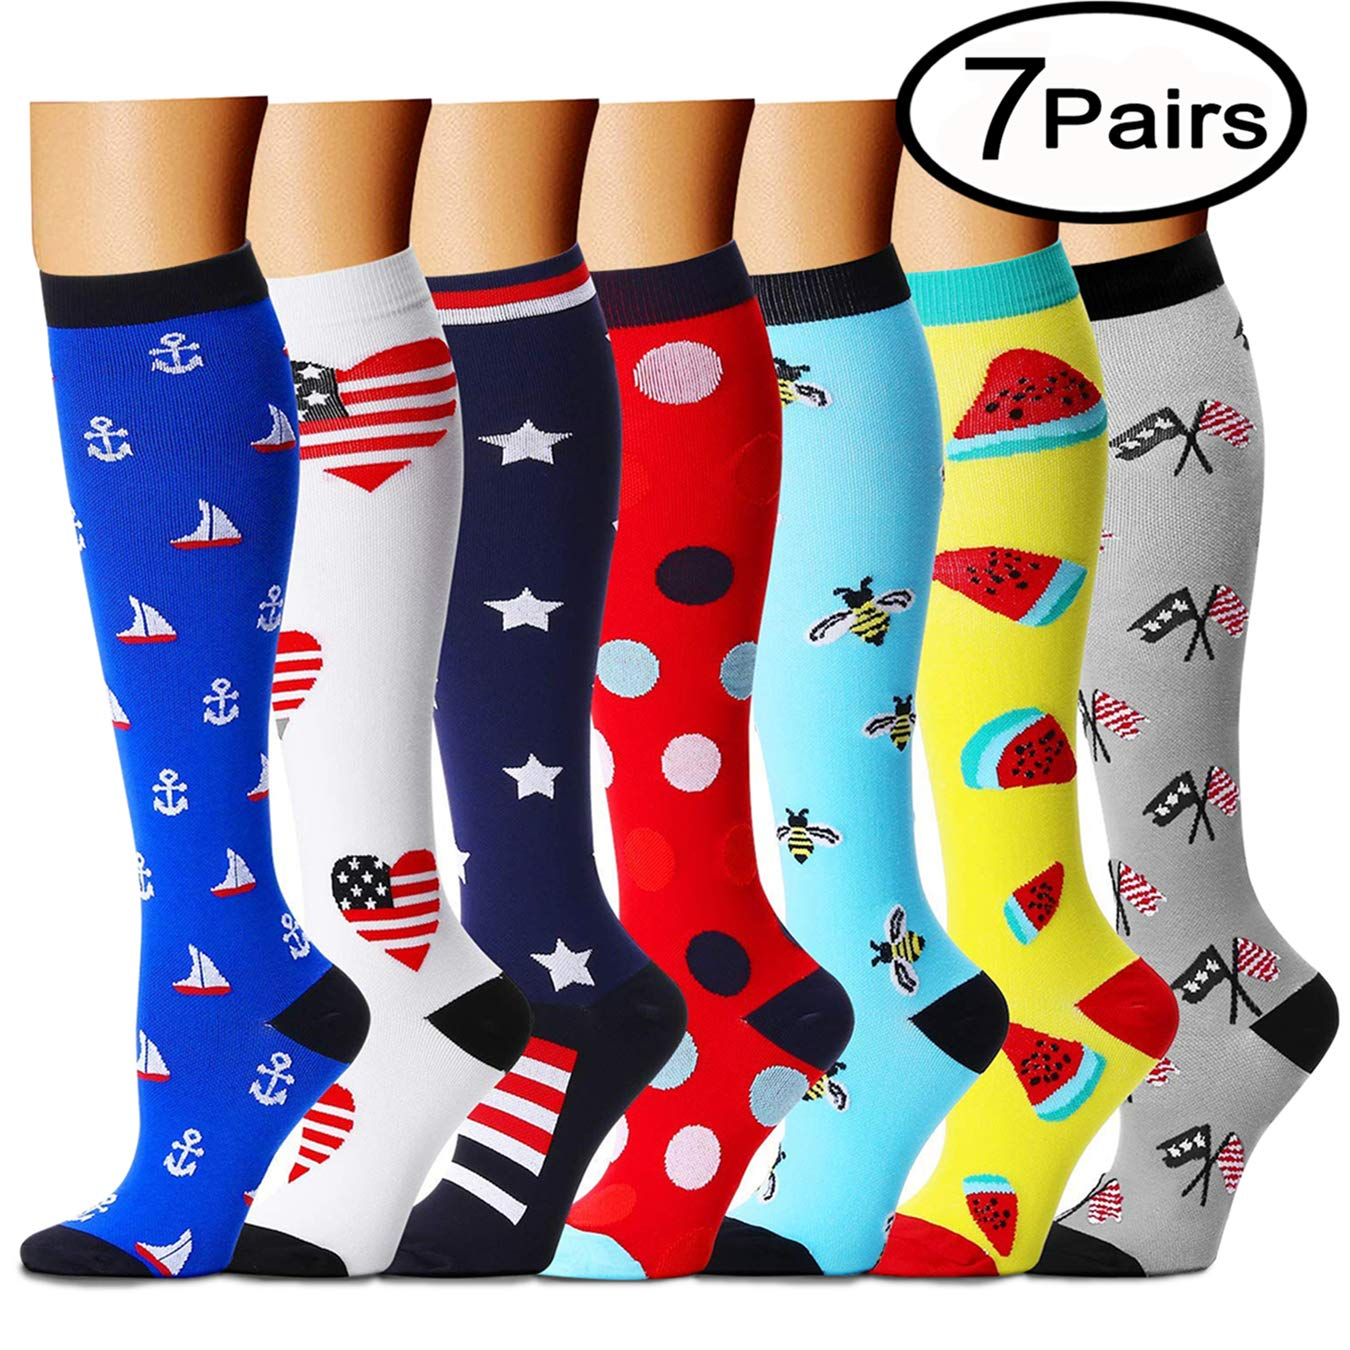 QUXIANG Copper Compression Socks for Women and Men - Best Medical, Nursing, Running, Athletic, Edema, Diabetic, Varicose Veins, Travel, Pregnancy & Maternity 15-20 mmHg (Small/Medium, Multicolour 05)